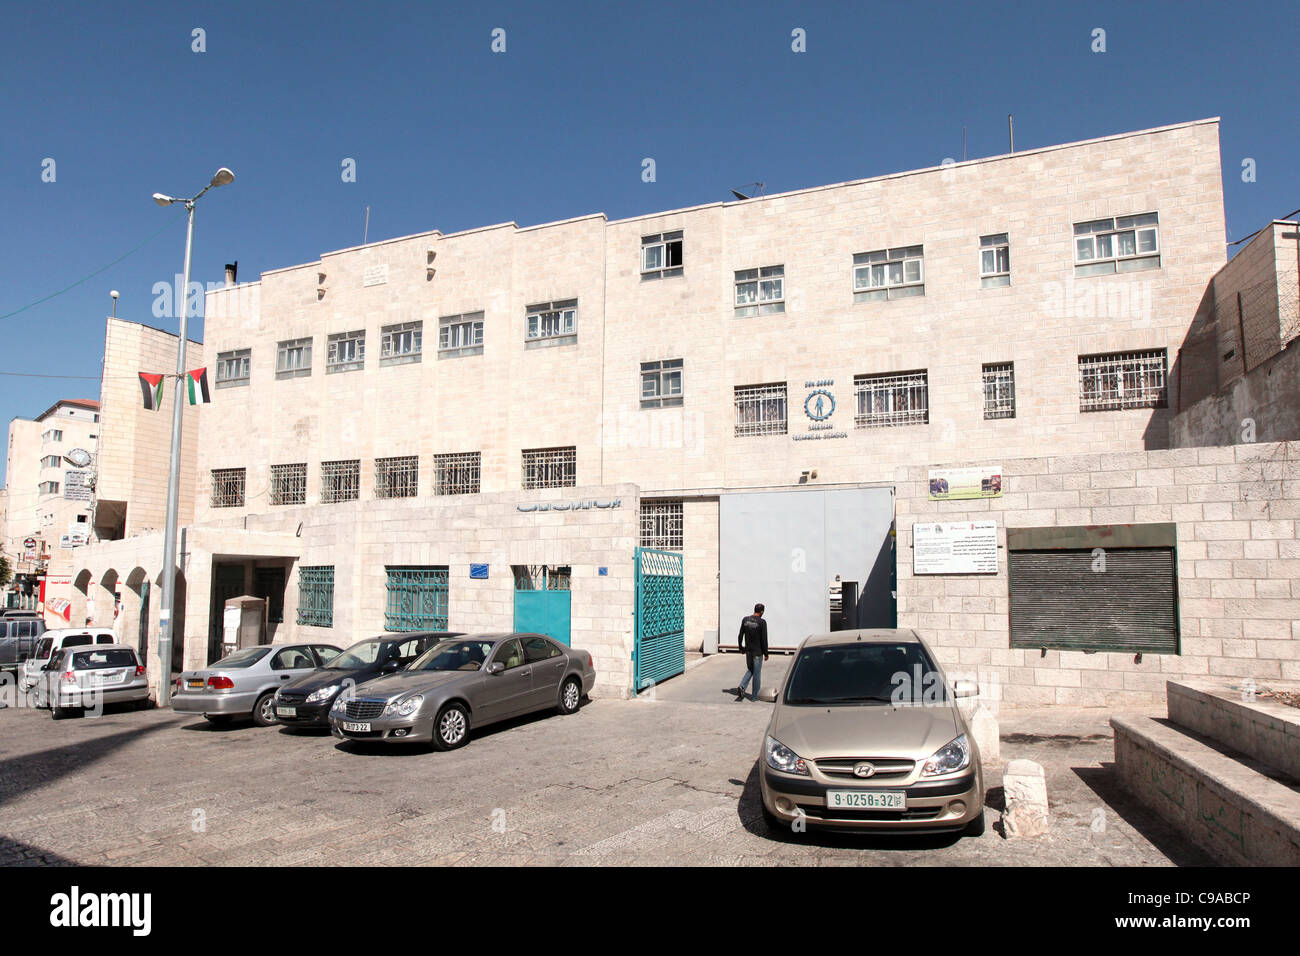 Main Building of the Salesian Technical School Don Bosco in Bethlehem, Palestine - Stock Image